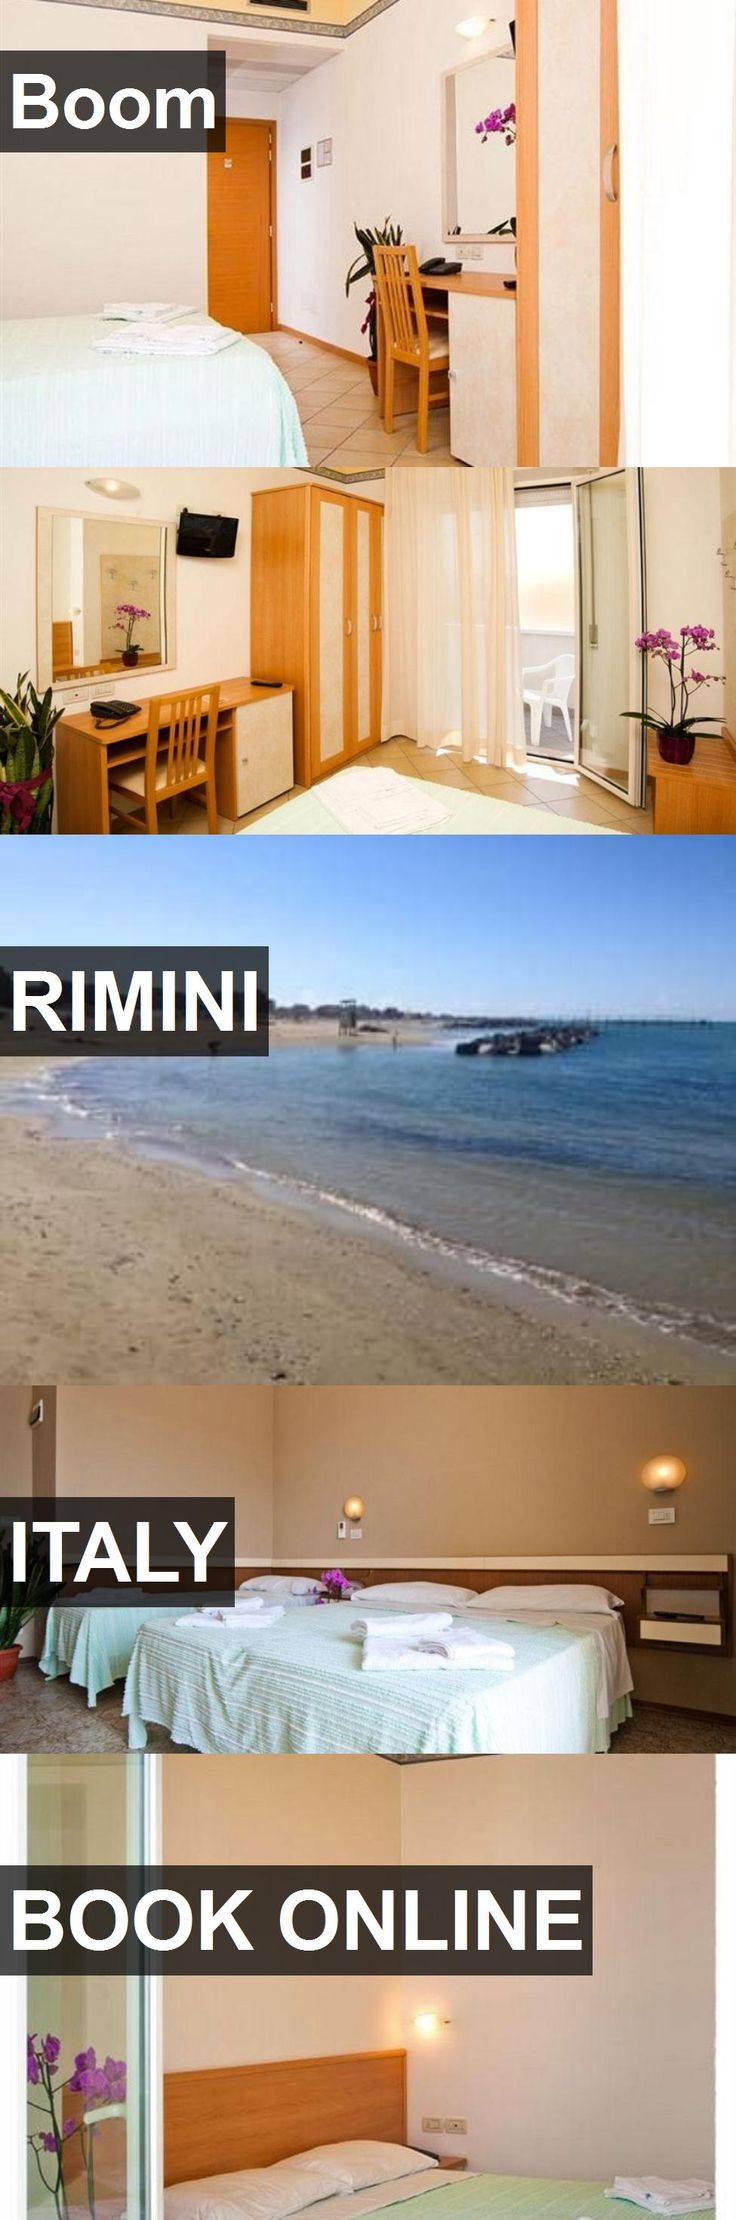 Hotel Boom in Rimini, Italy. For more information, photos, reviews and best prices please follow the link. #Italy #Rimini #Boom #hotel #travel #vacation